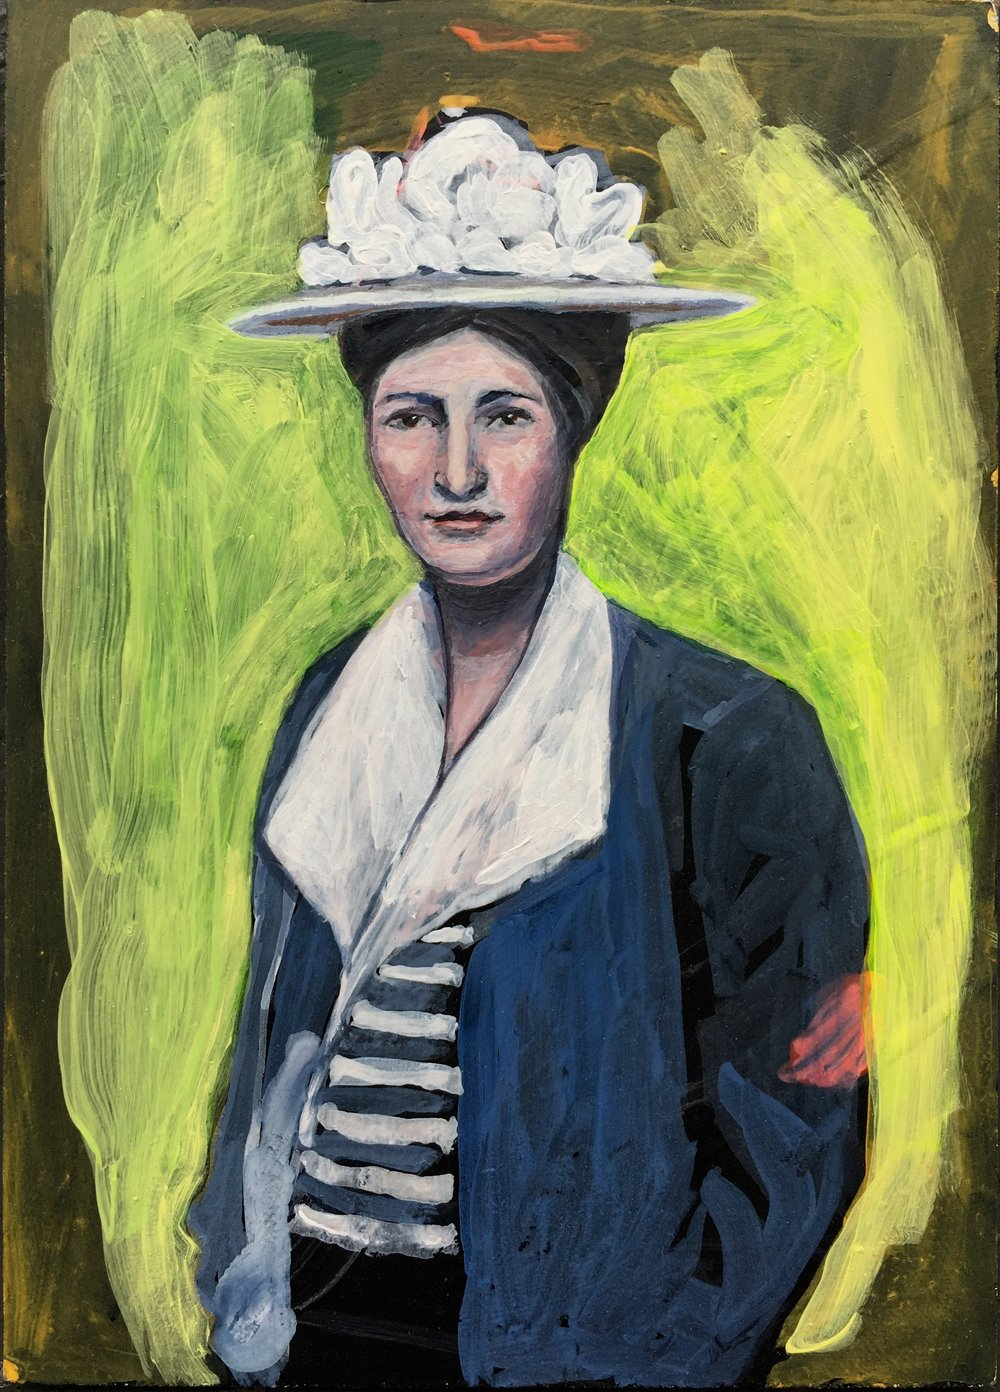 WILLIE - or - WILLA CATHER    acrylic and gouache on board, 5 x 8 in., 2016